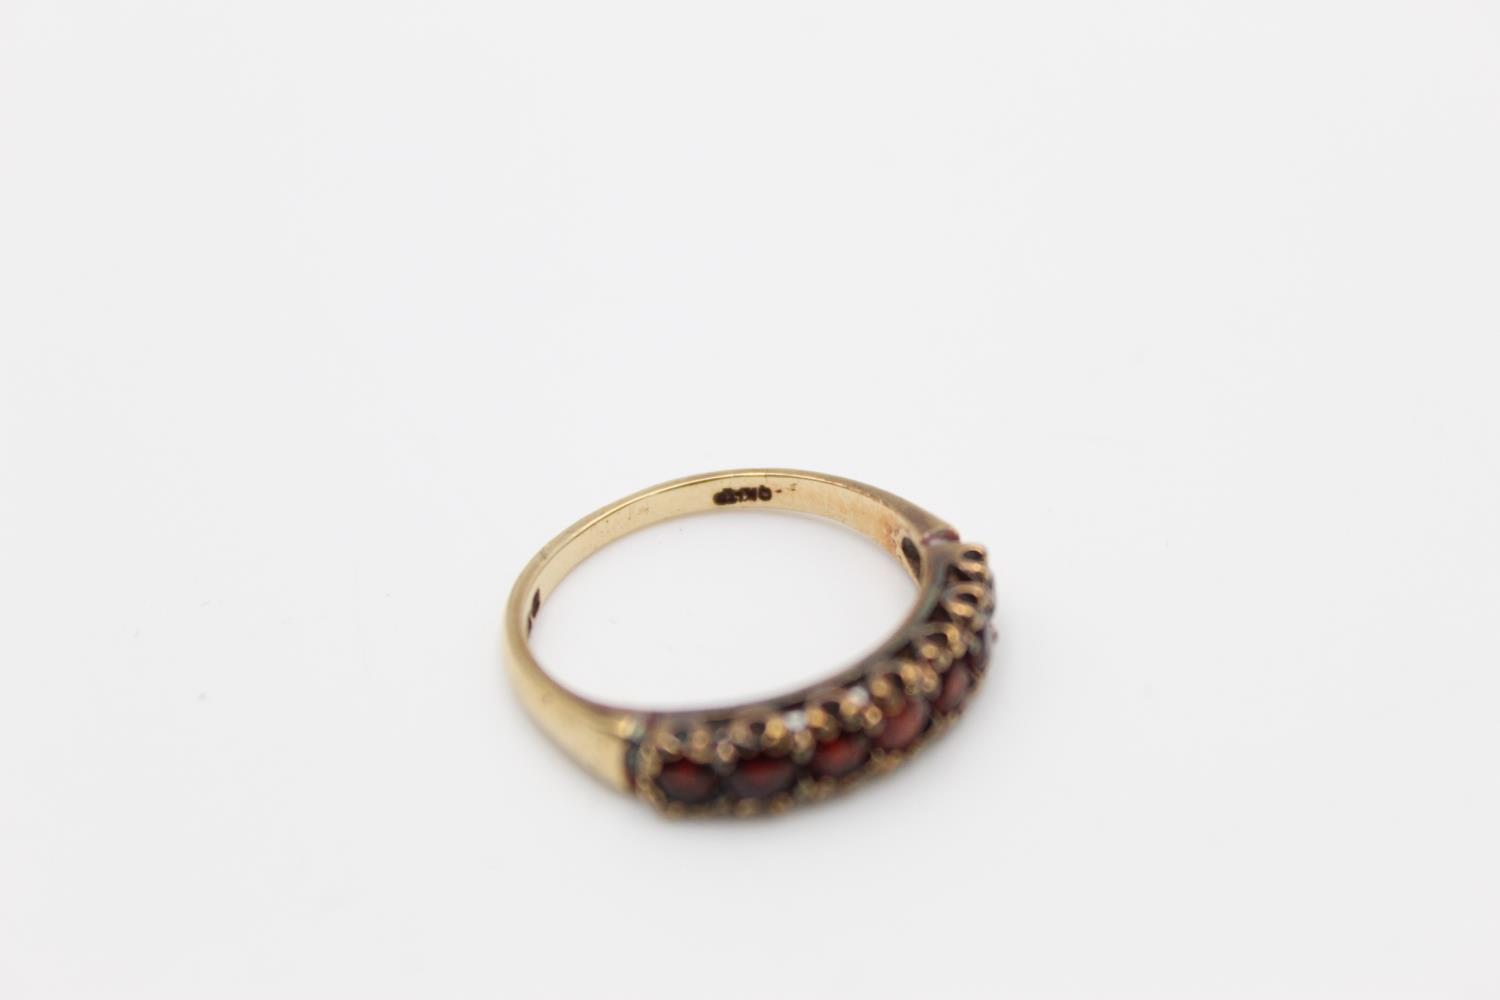 2 x 9ct gold garnet rings inc 7 stone, cluster 4.1g Size O & H - Image 10 of 10